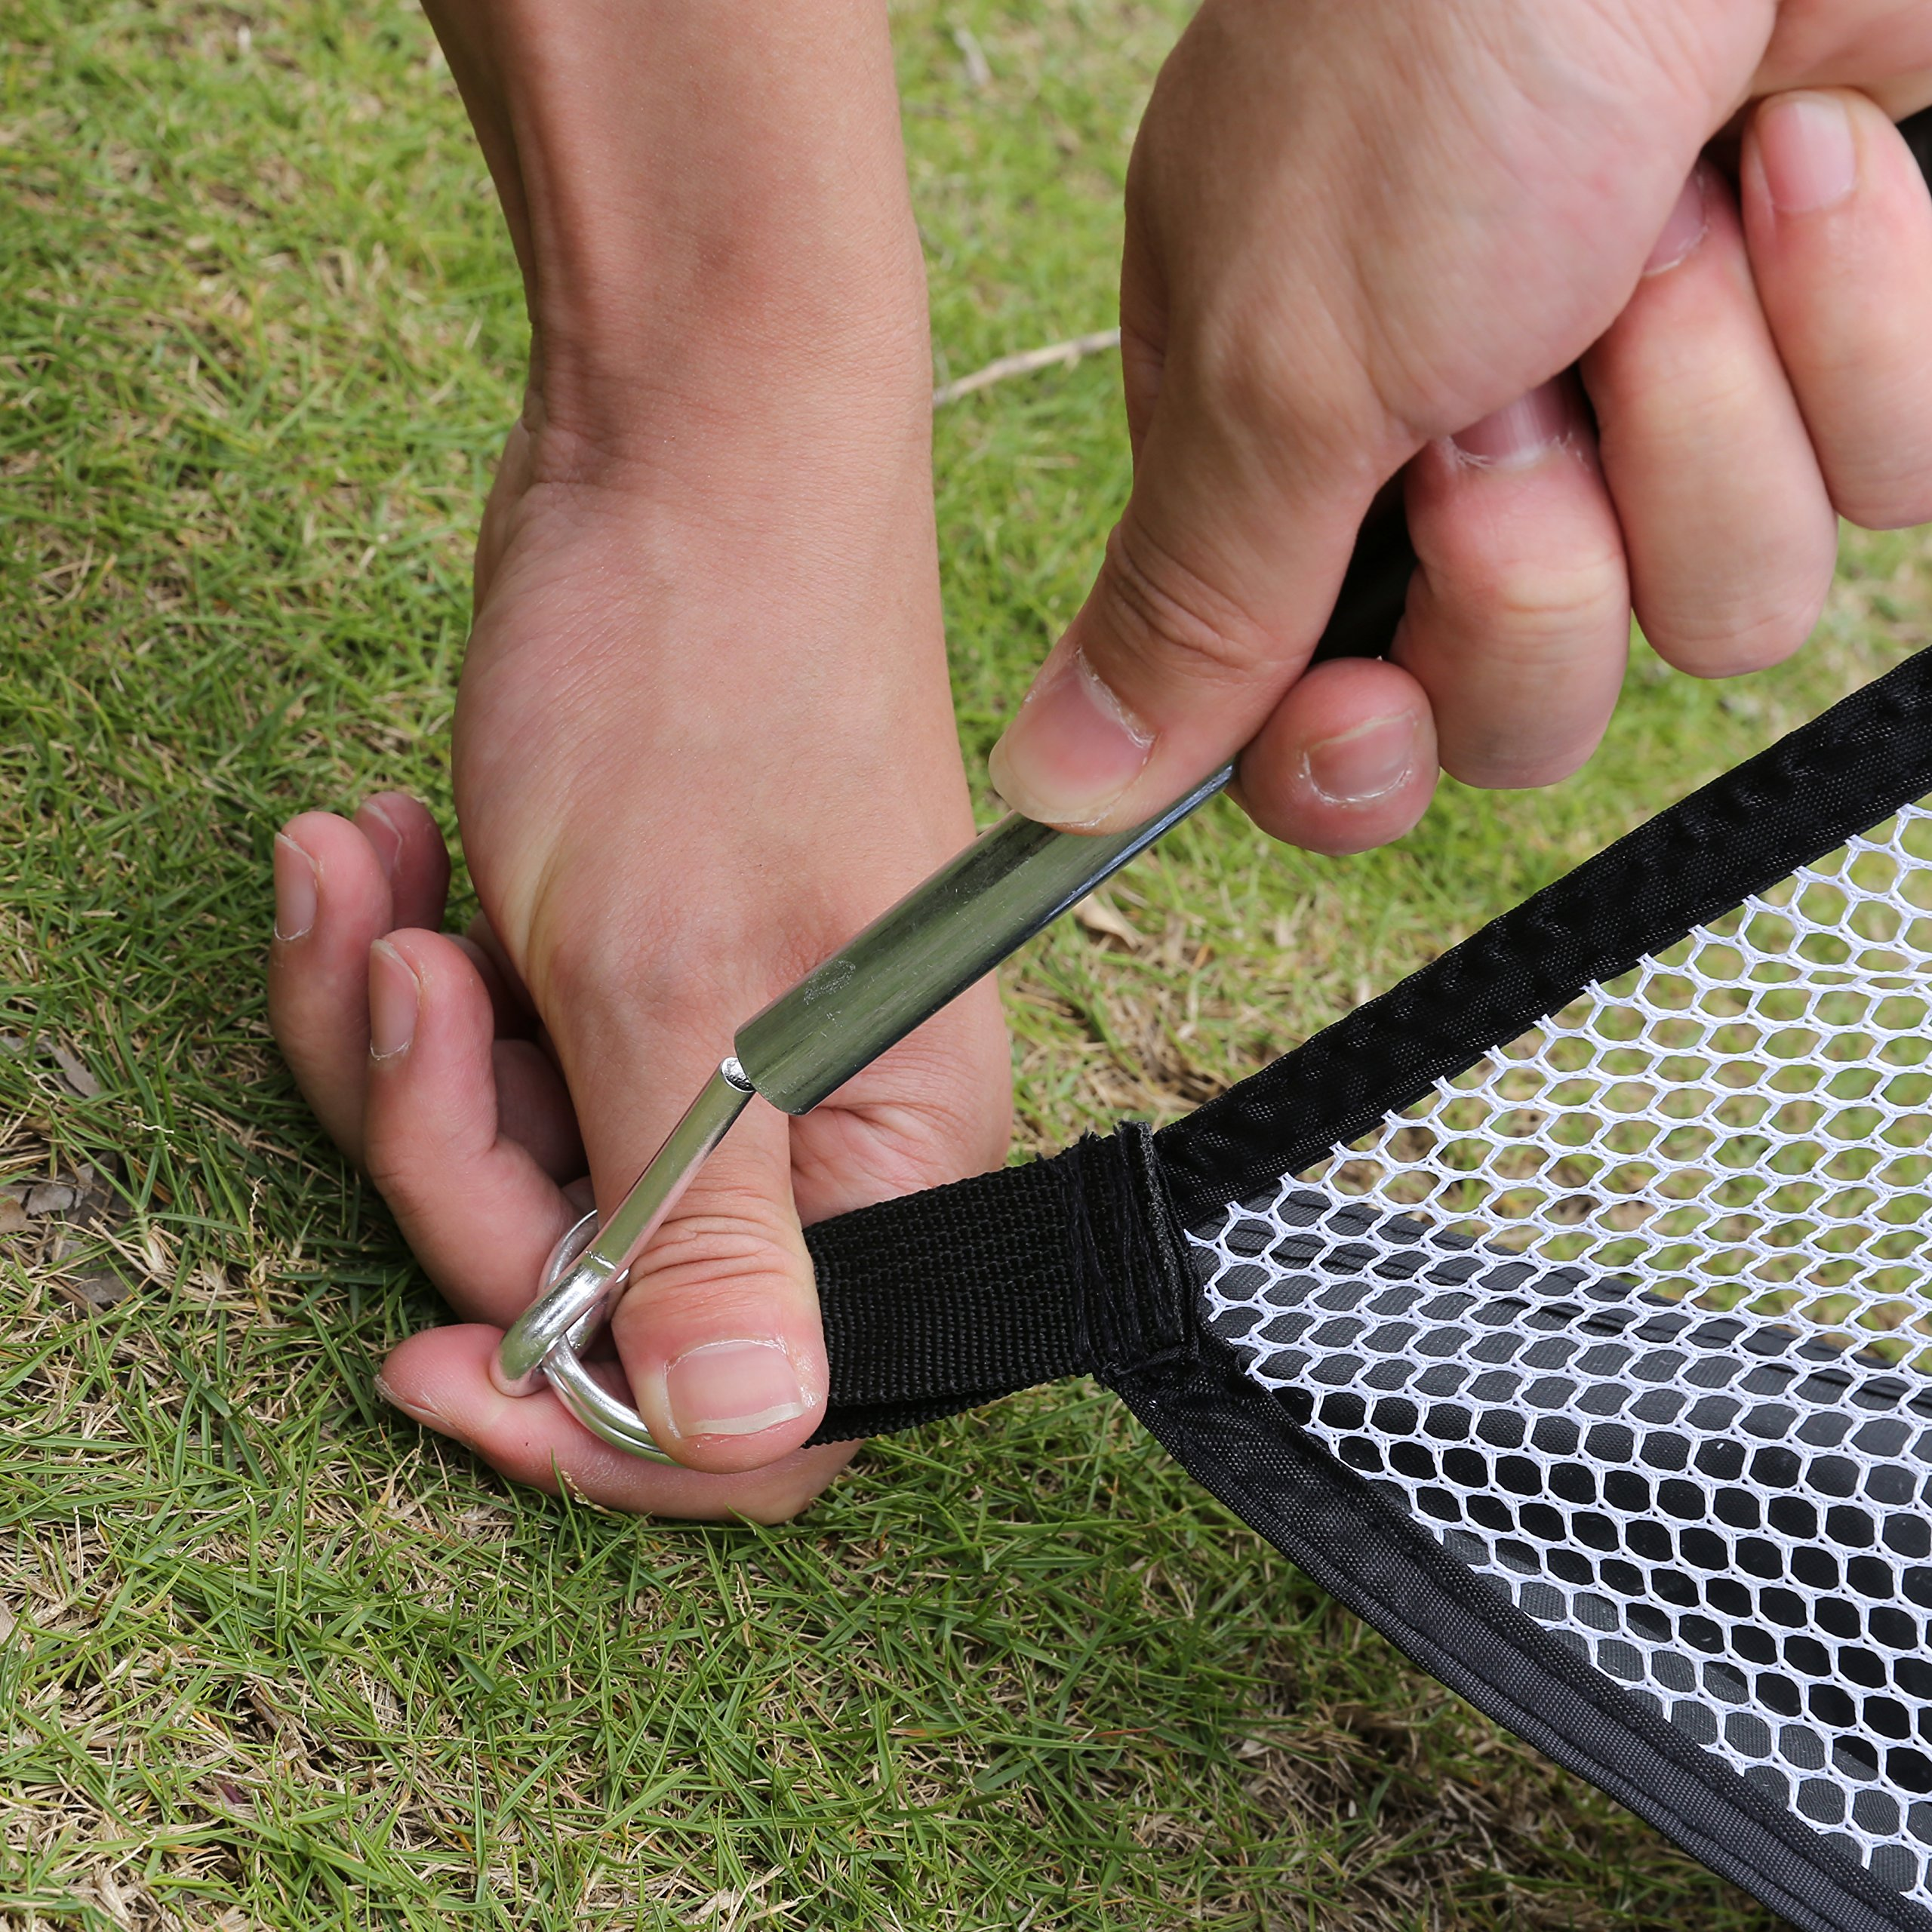 OUTCAMER Golf Hitting Net 10 x 7 ft Collapsible Portable Golf Practice Driving Net for Backyard Training Indoor and Outdoor by OUTCAMER (Image #6)